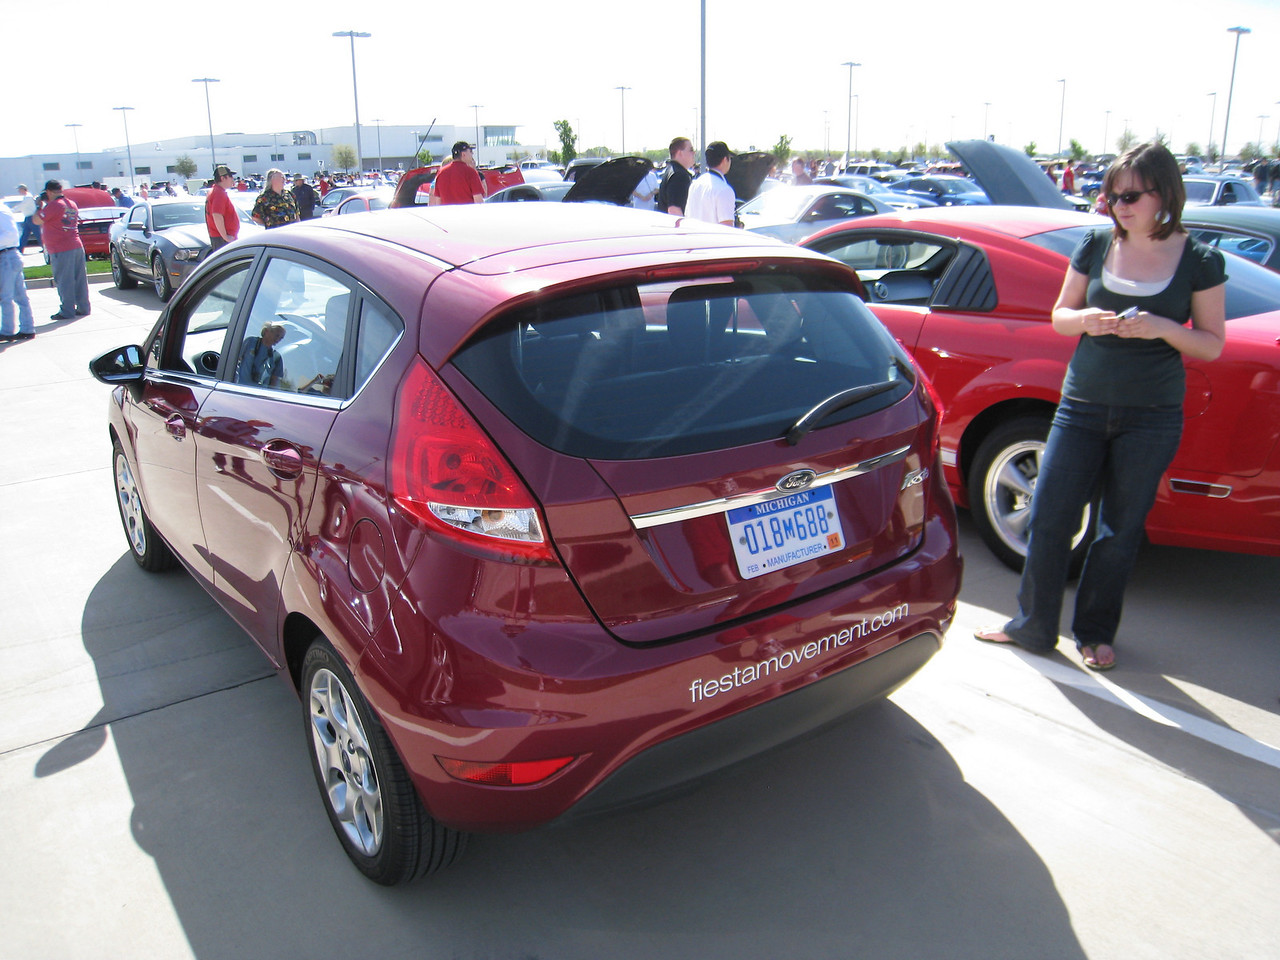 2012 Ford Fiesta from the Ford Fiesta Movement